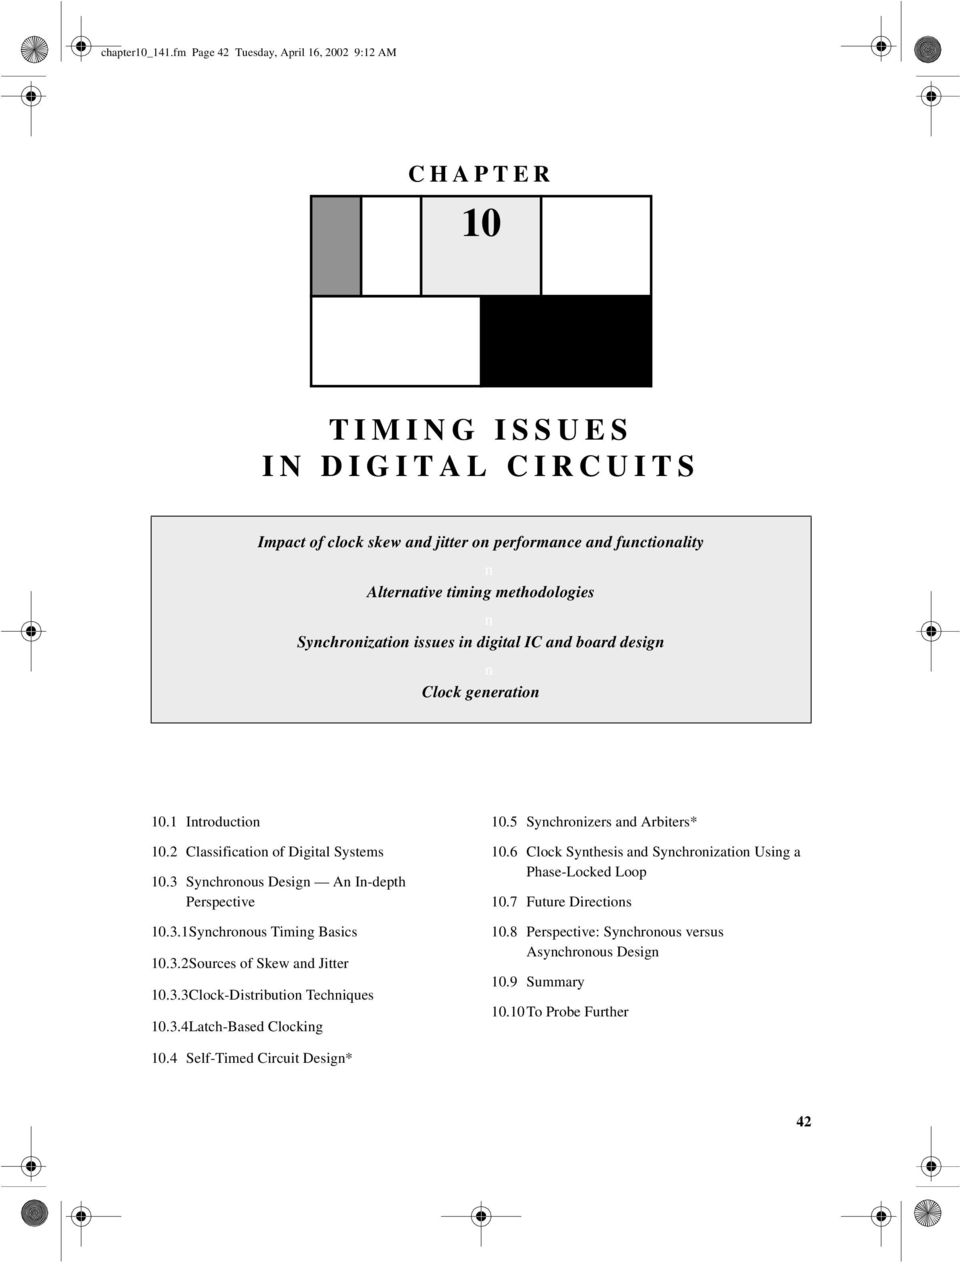 TIMING ISSUES IN DIGITAL CIRCUITS - PDF